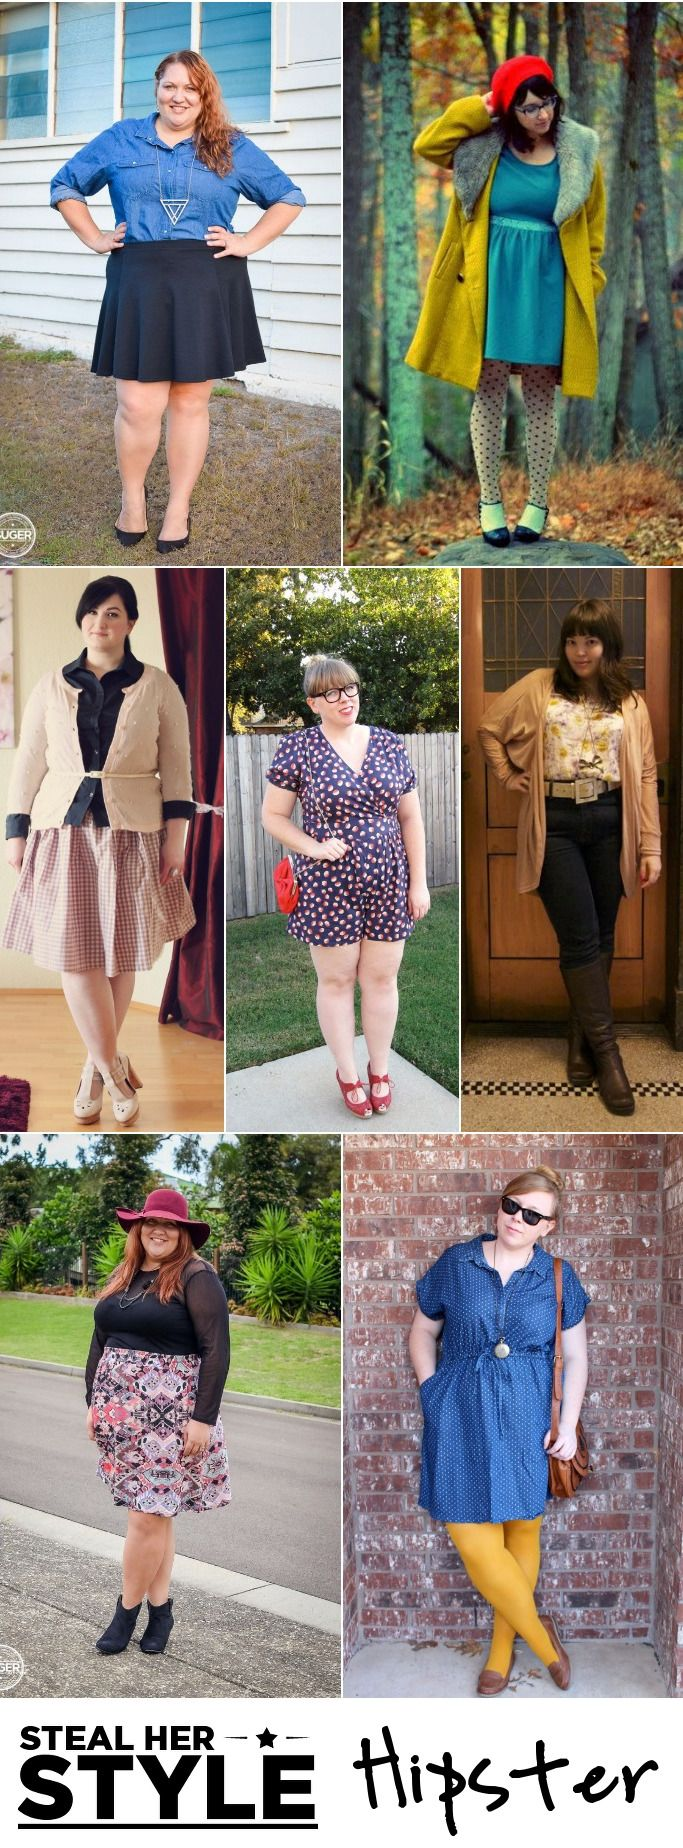 Suger Coat It: Living the Sweet Life | Steal Her Style: Hipster | http://sugercoatit.com | An Australia Plus-Size Fashion  Lifestyle Blog